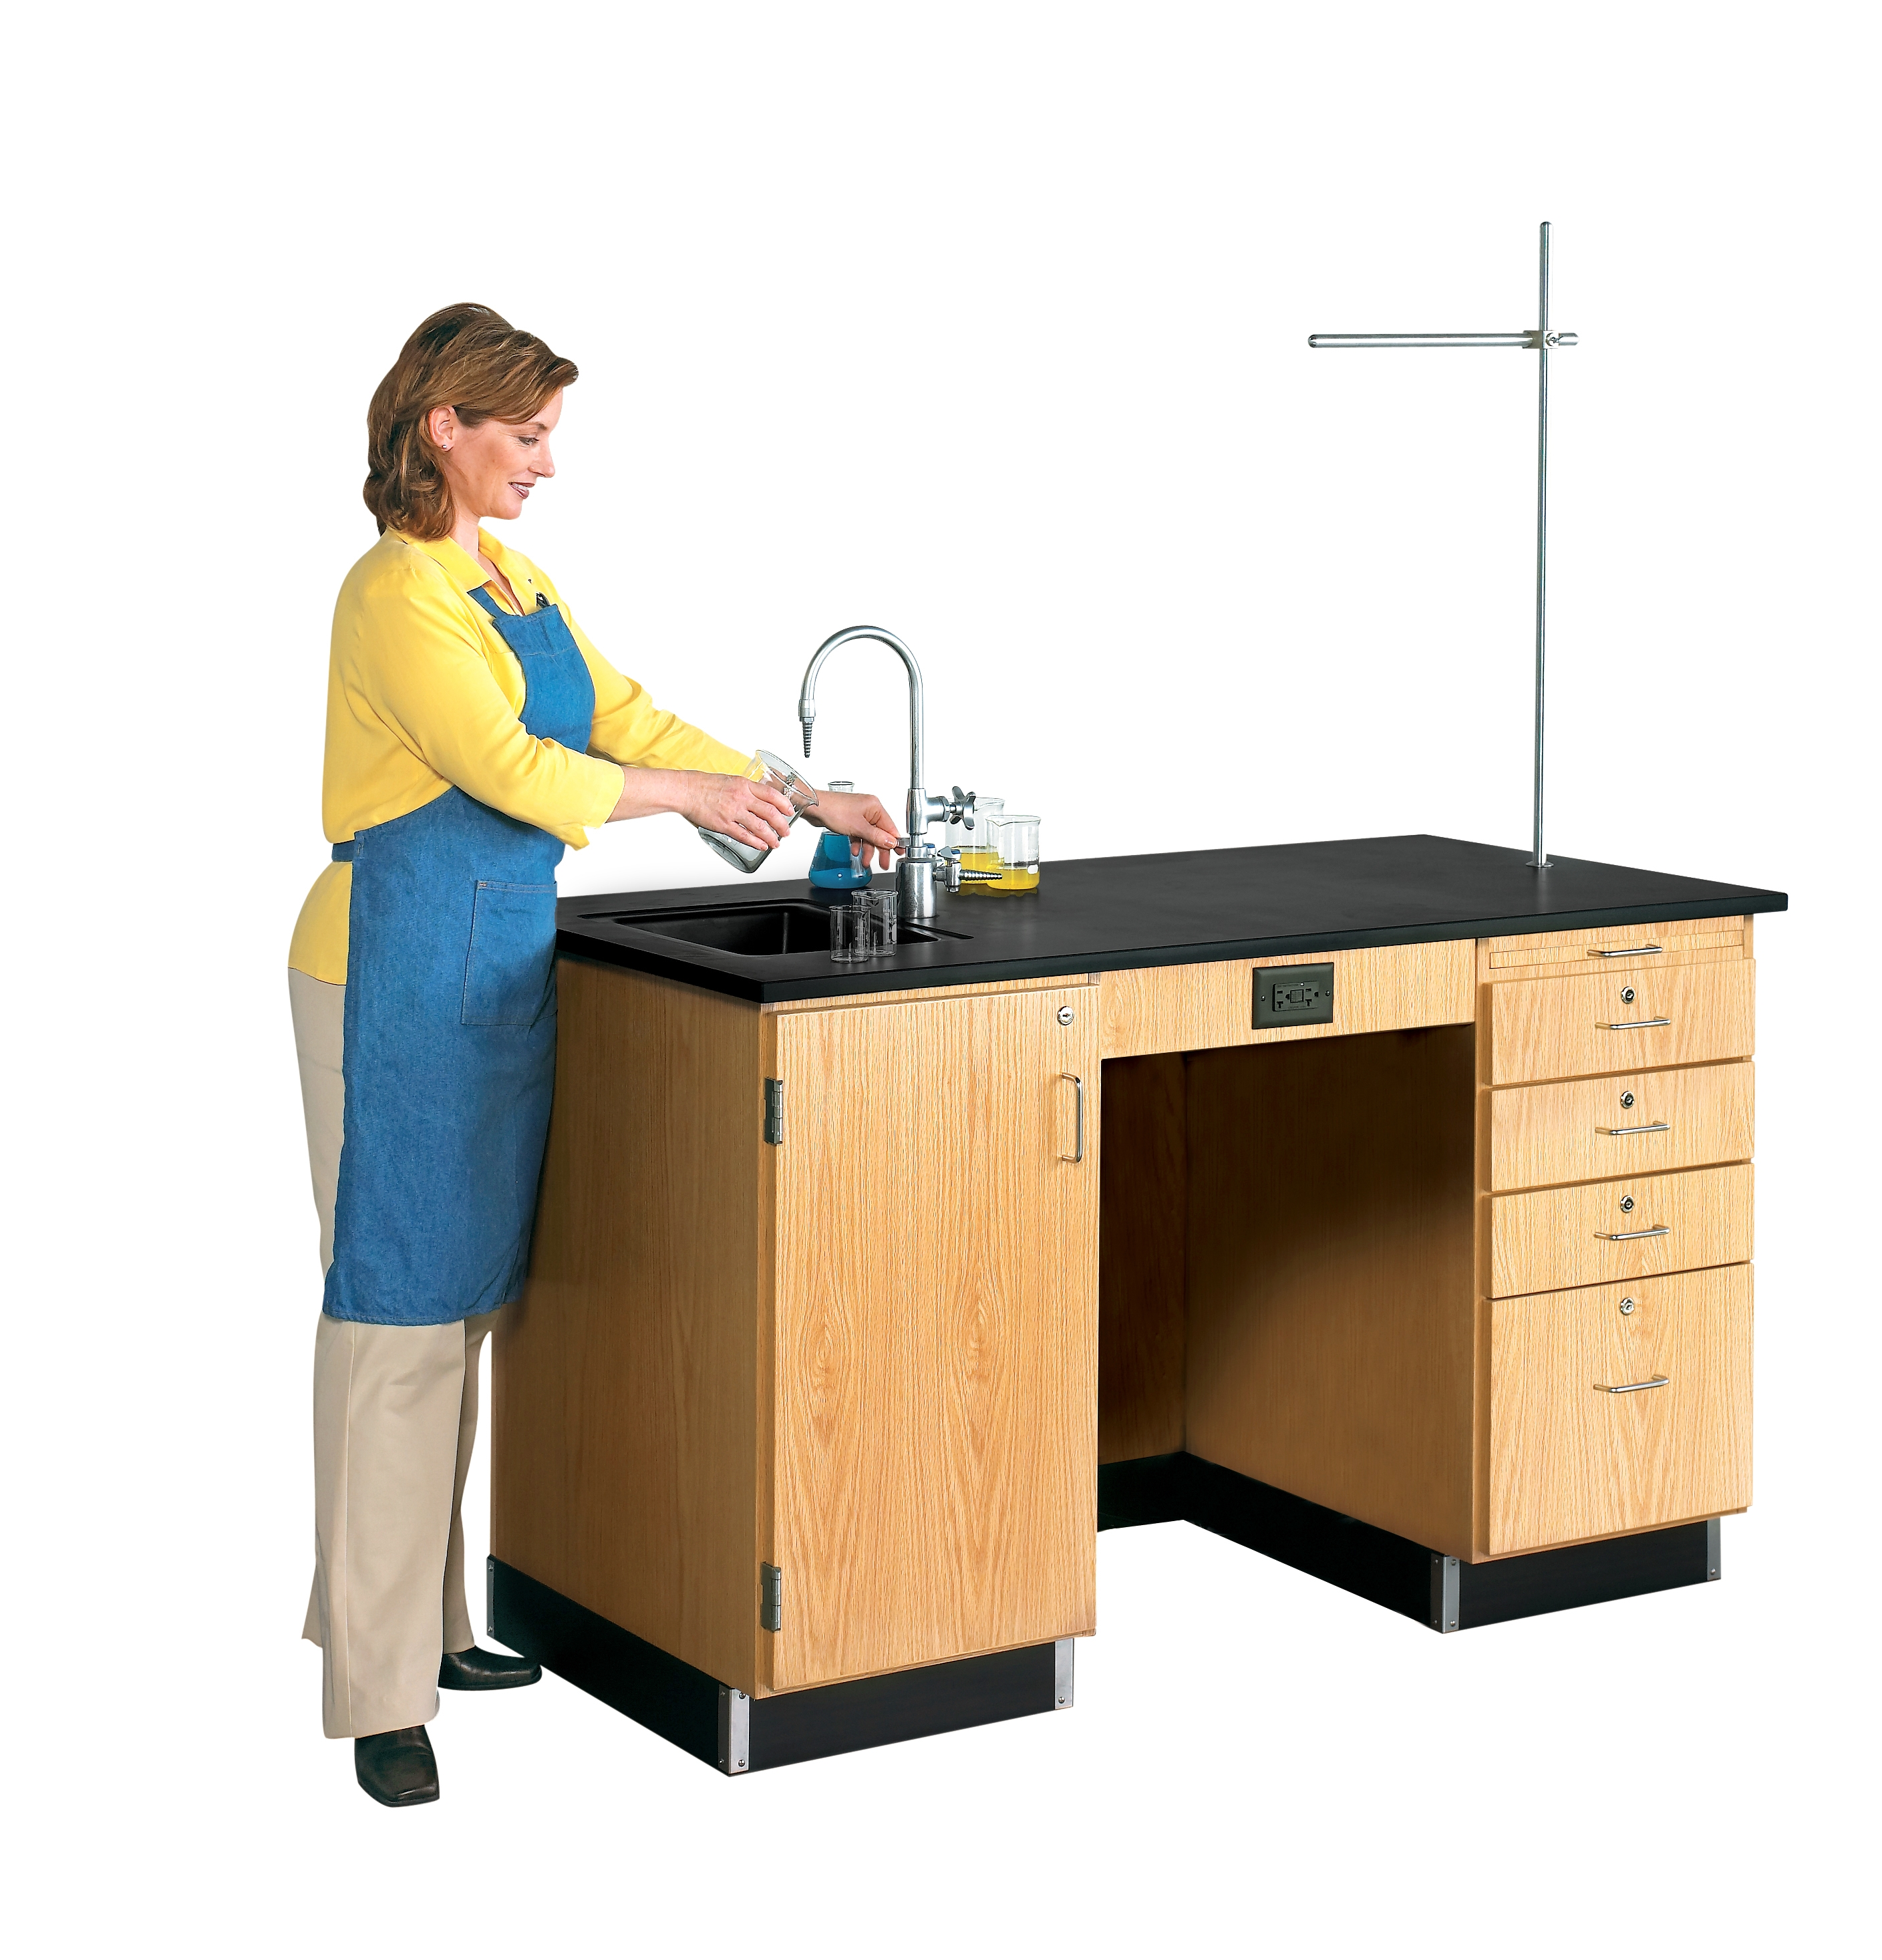 Diversified Woodcrafts 5' Instructor's Desk with Fixtures, Drawers, & Cabinet - Epoxy Top